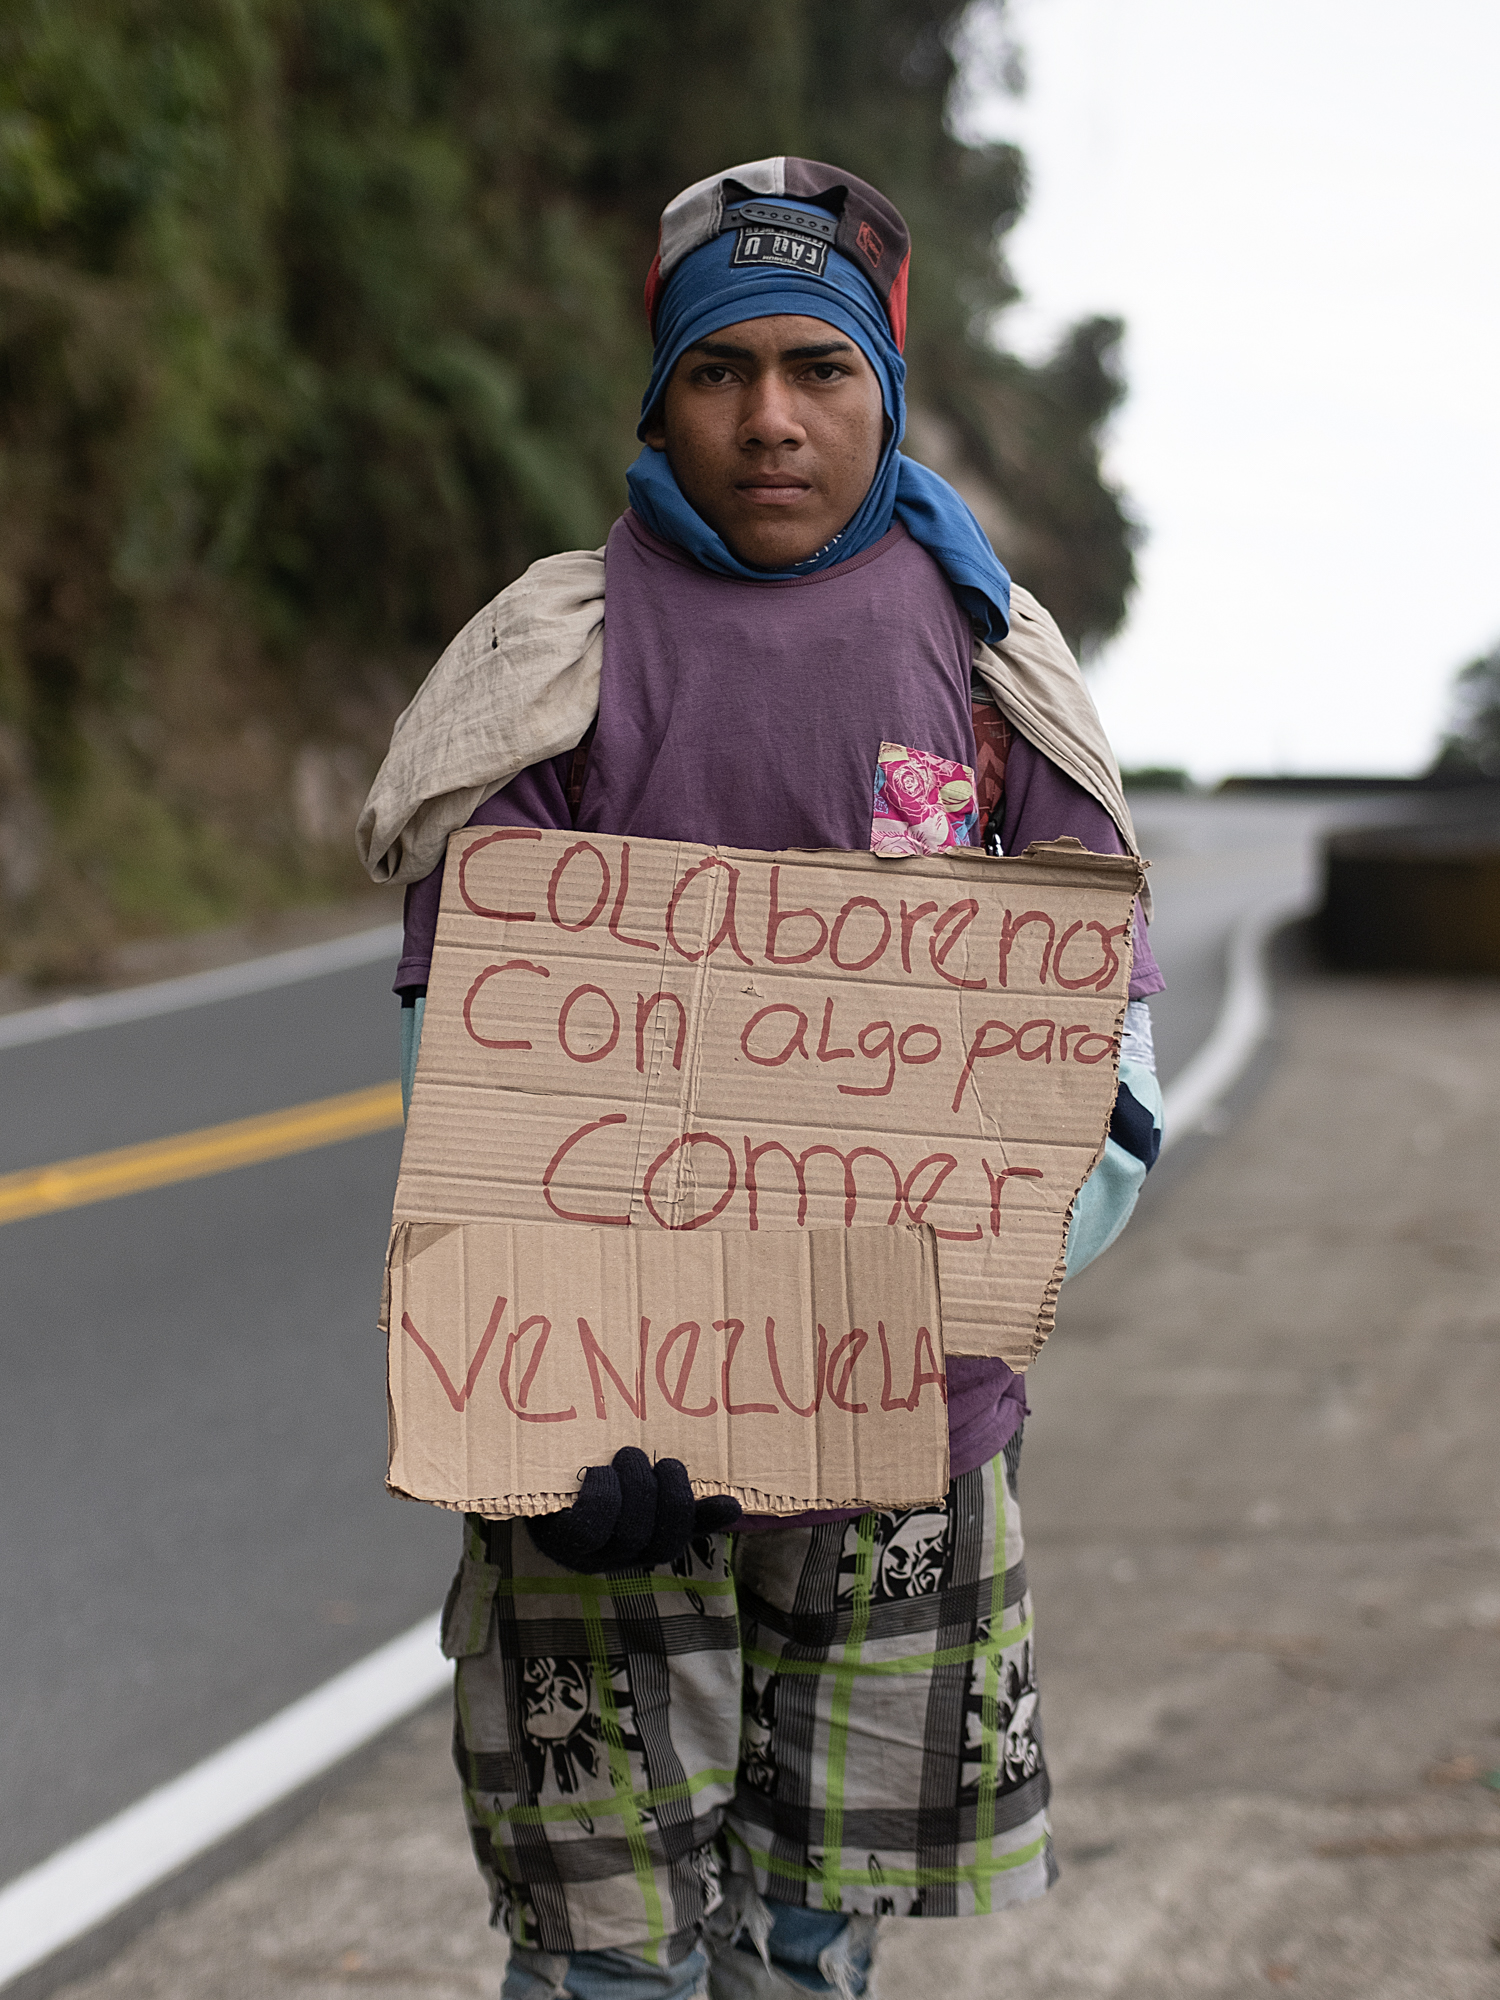 Luiz Diaz (18) is from Valencia is traveling with his older brother to Peru where he hopes to join his cousin. He hopes to make enough money to send to his mother for her medicine.